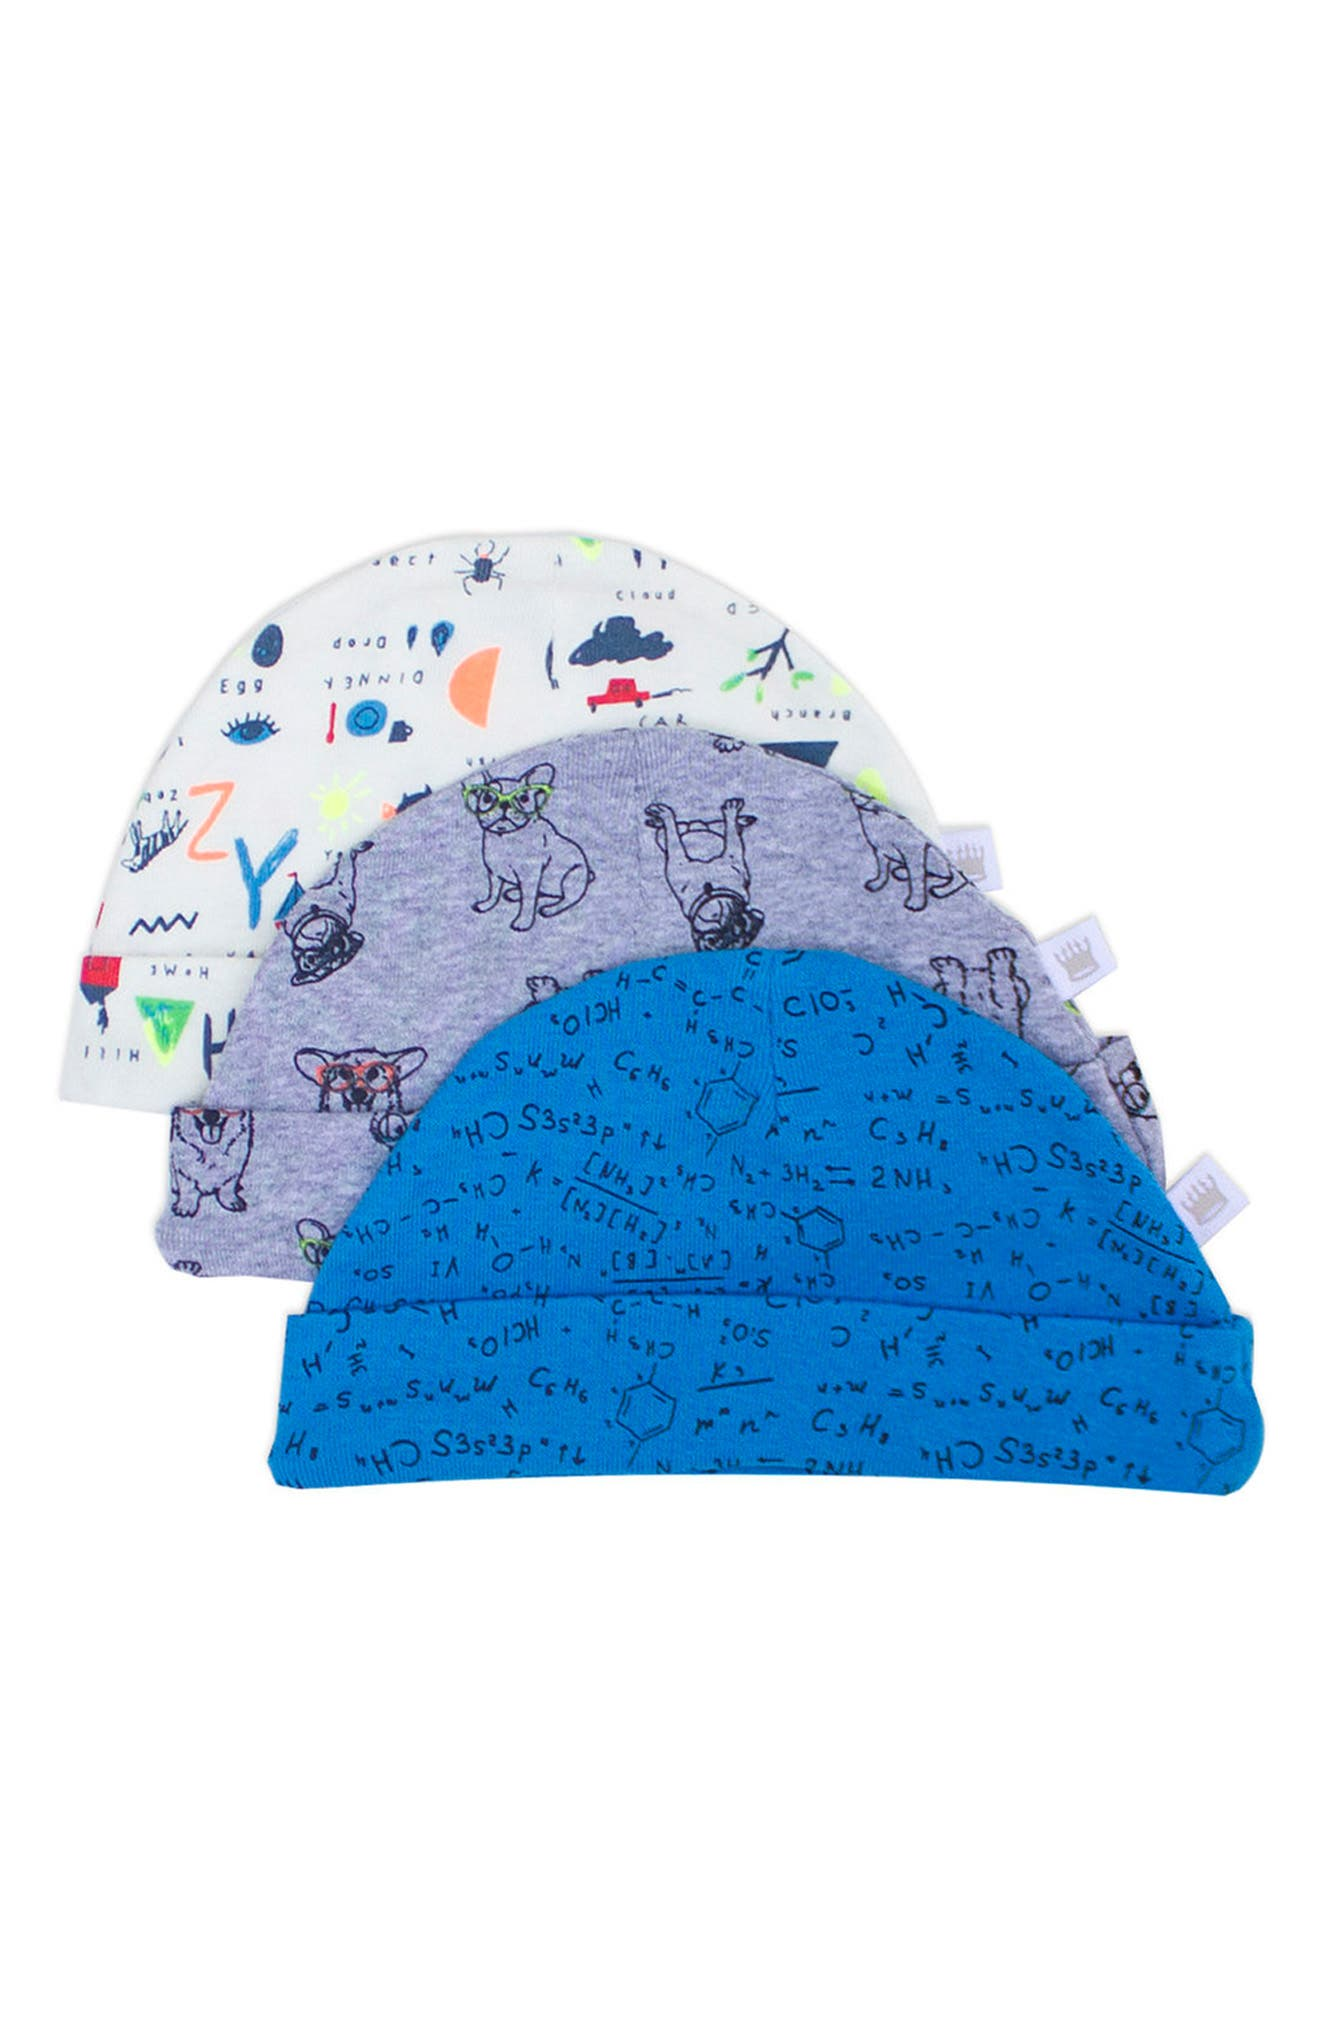 3-Pack Nerd Alert Hats Set,                             Main thumbnail 1, color,                             400